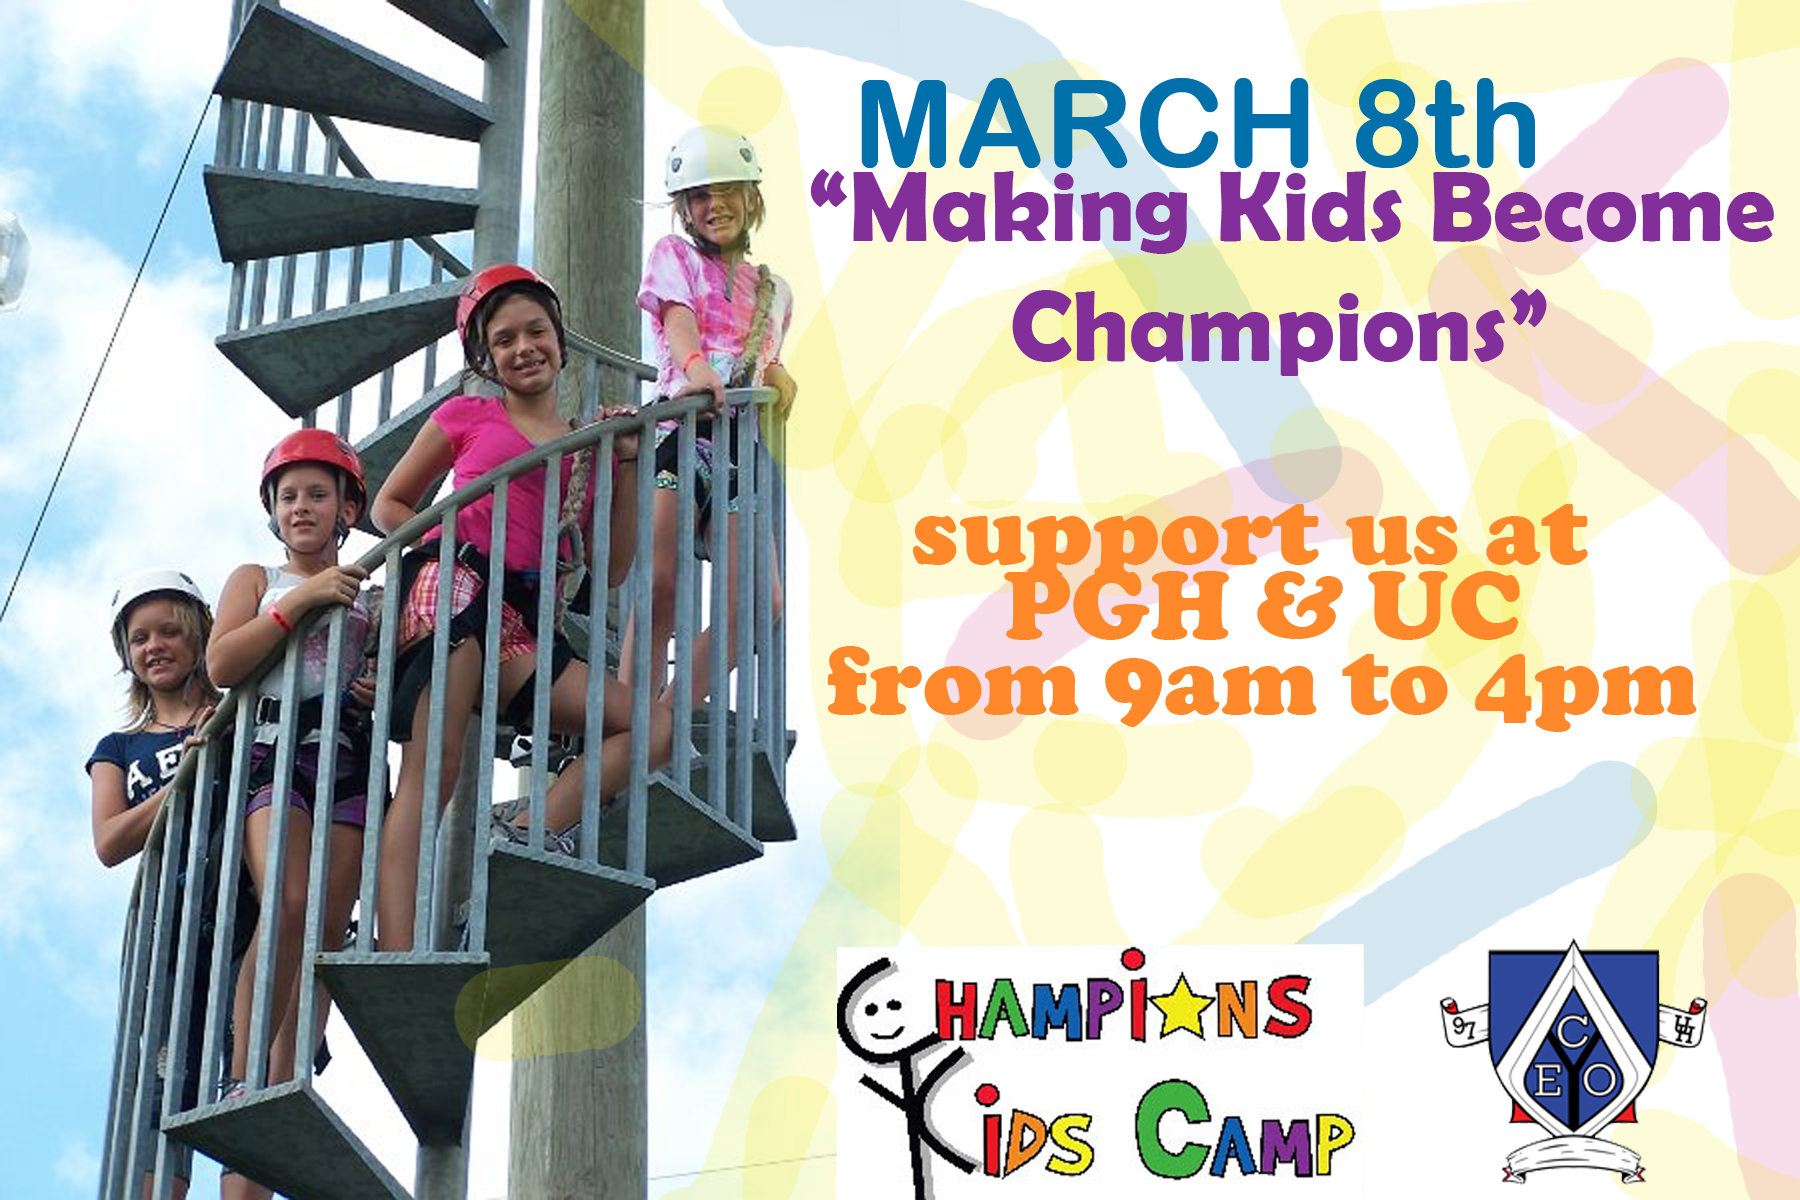 Champions Kids Camp Charity Bake Sale | UH CEO